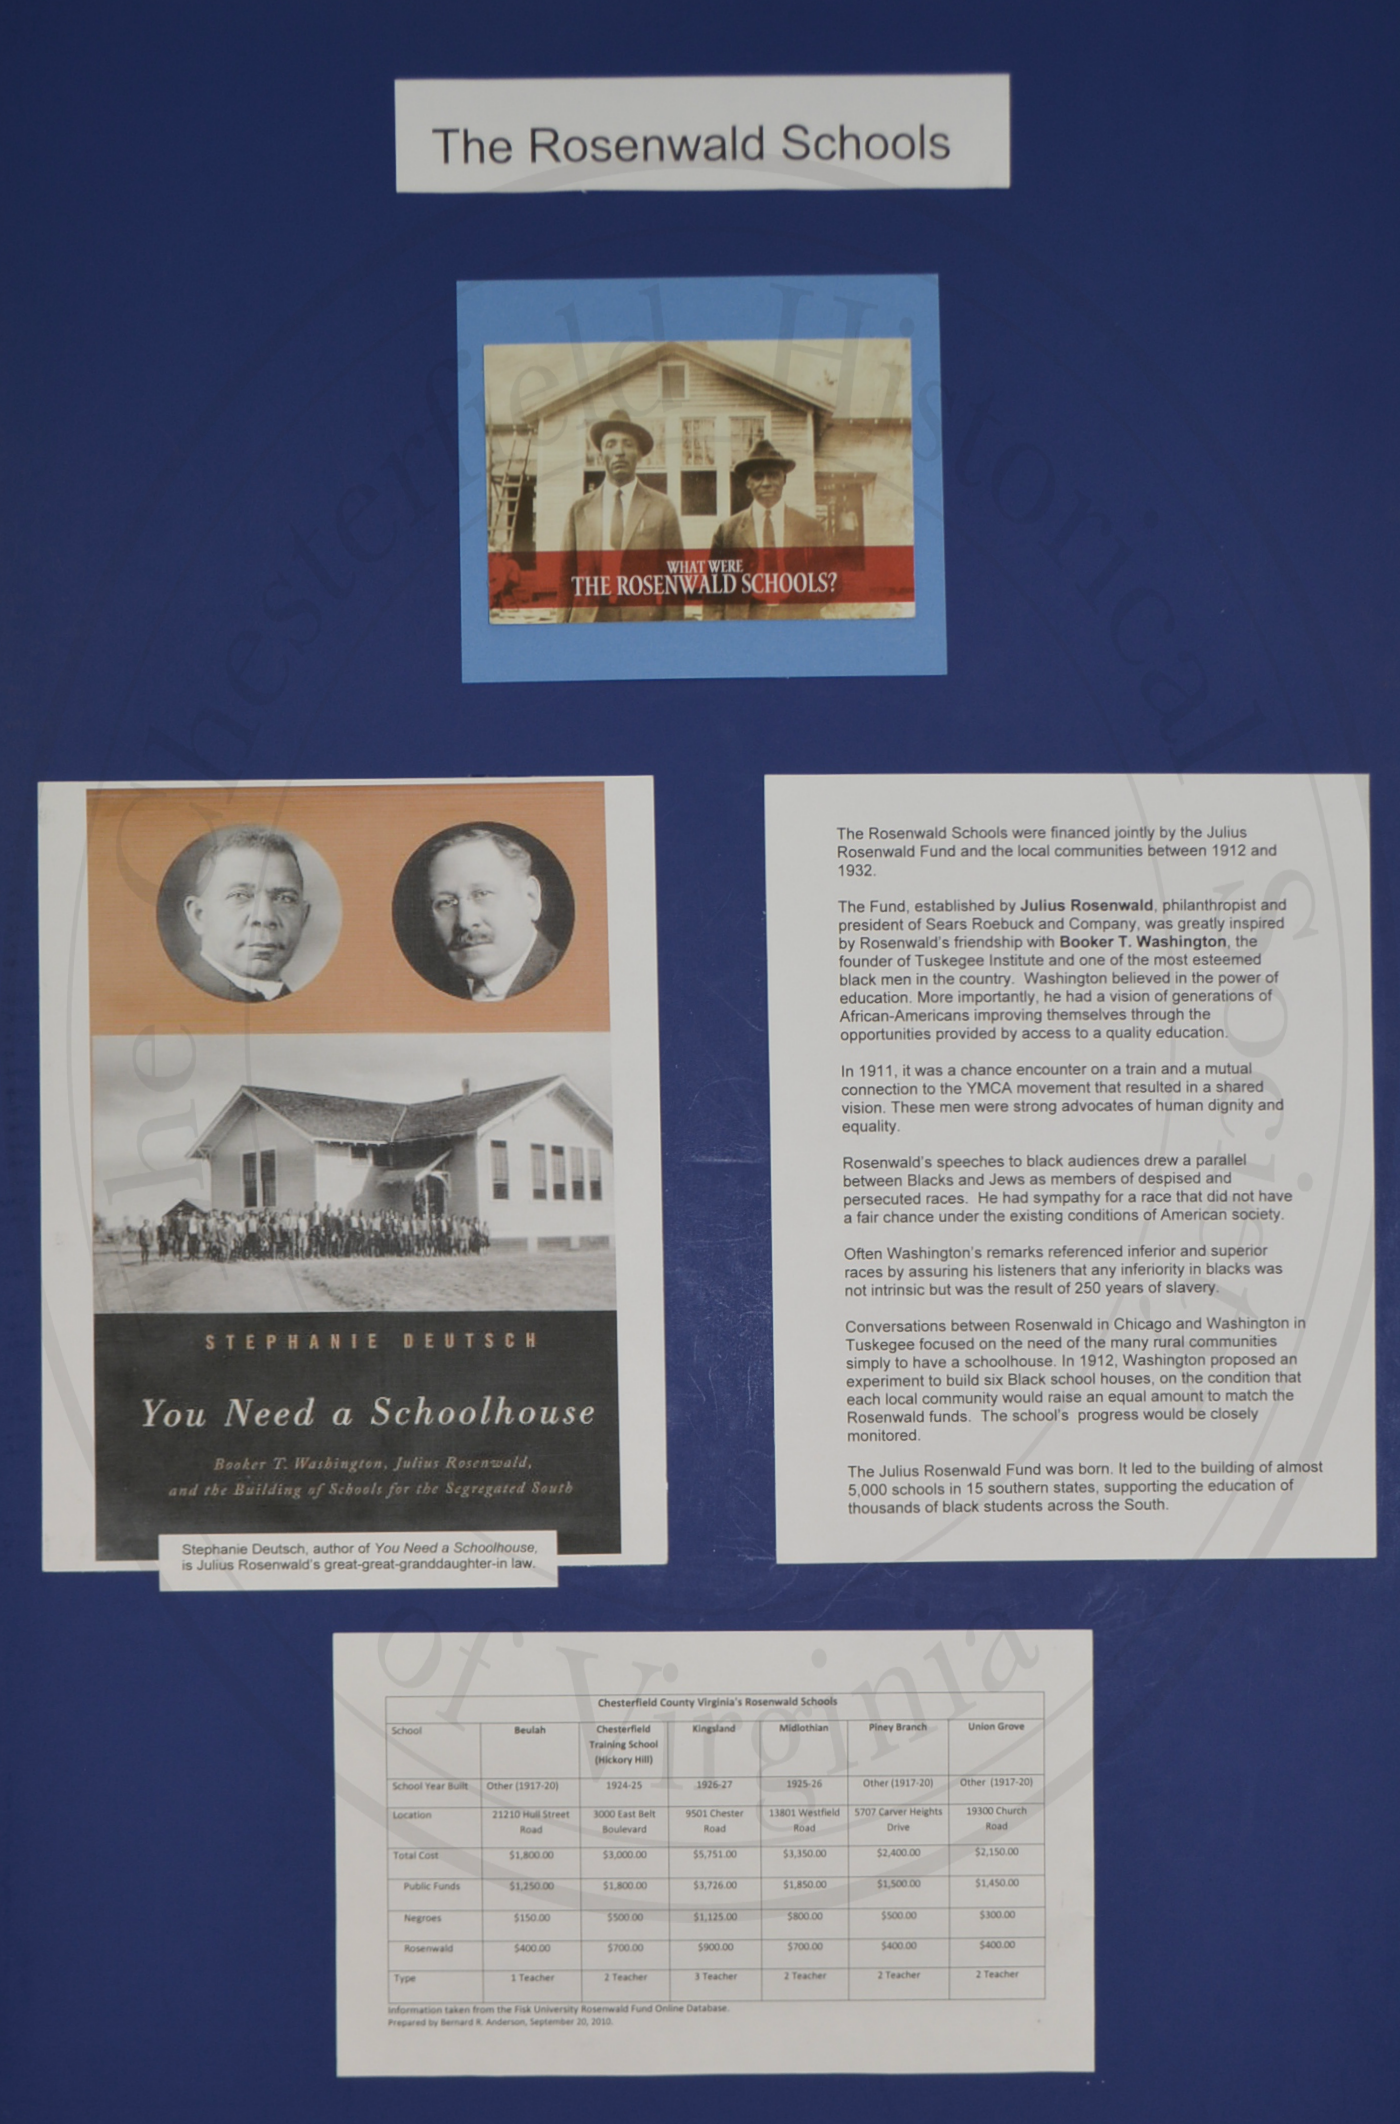 The Rosenwald Schools